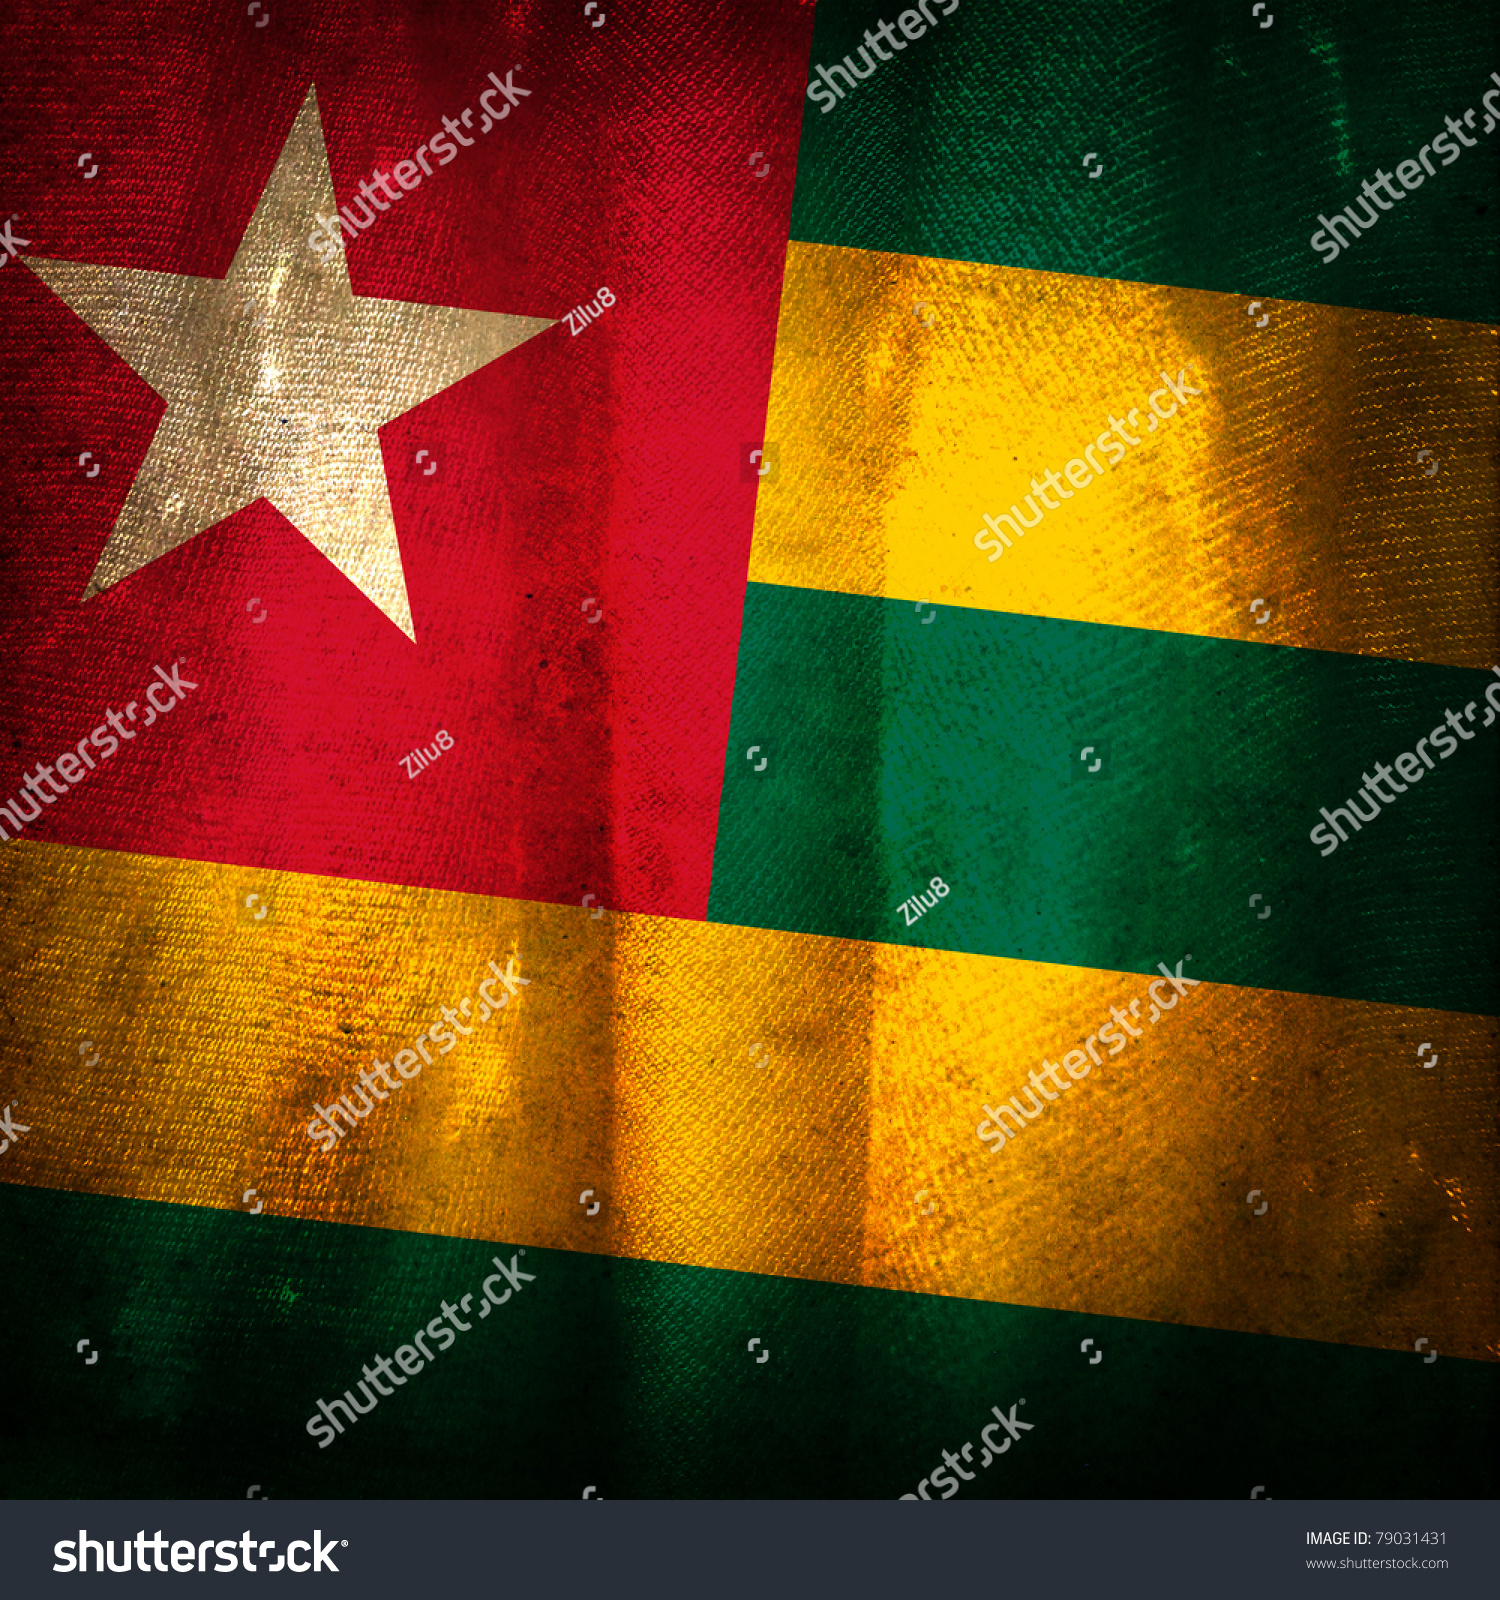 Old Grunge Flag Togo Stock Photo 79031431 - Shutterstock